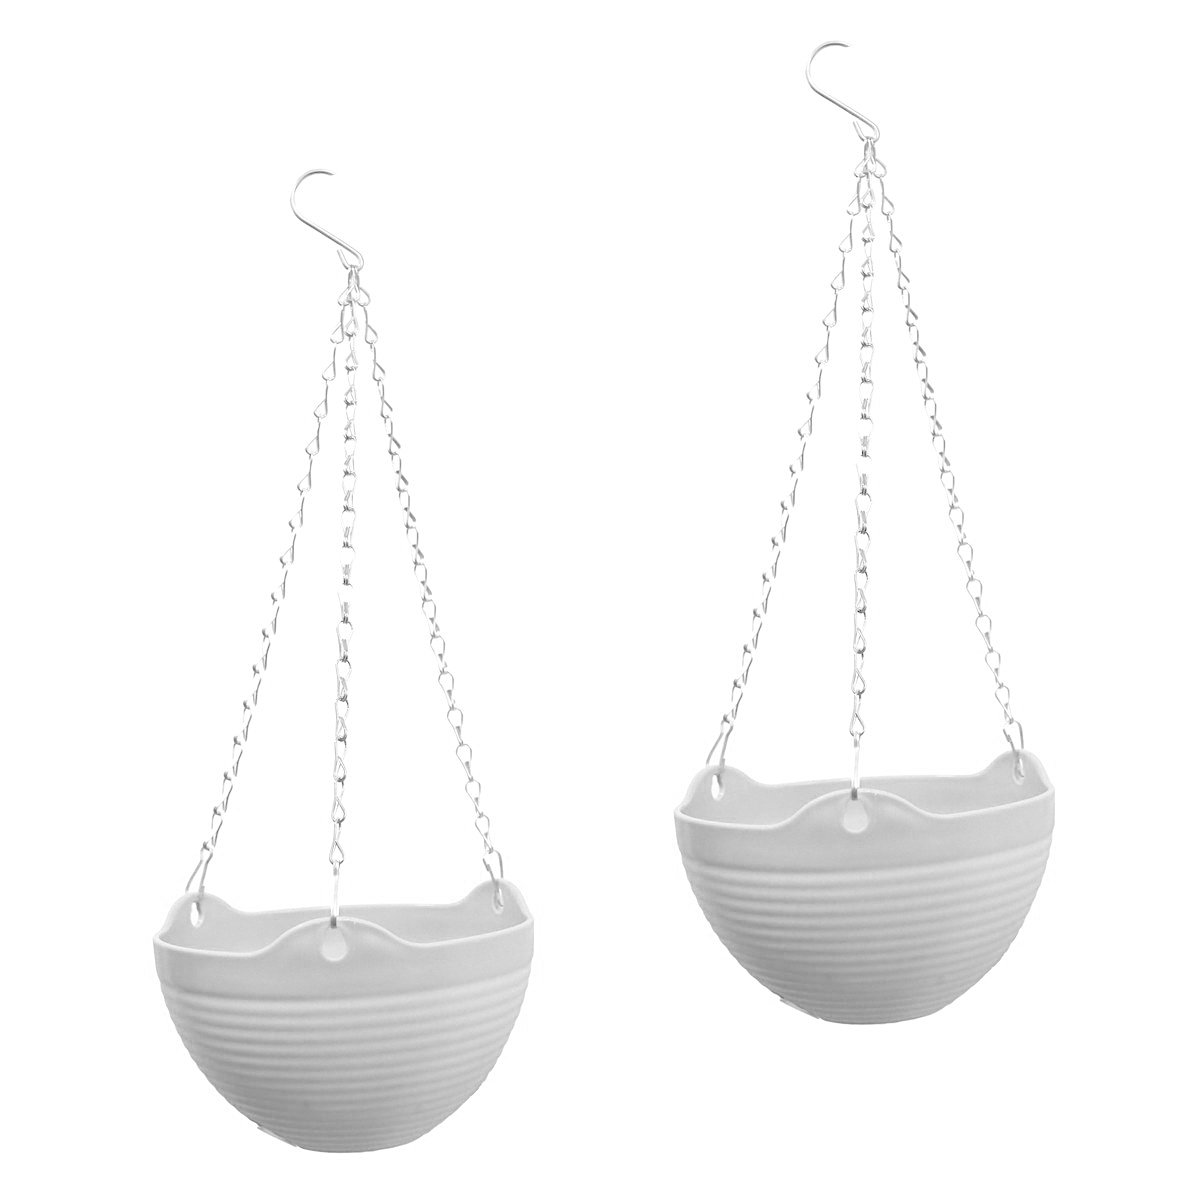 Yikush 2 Pack Hanging Flower Planter Pots with Chain for Indoor Outdoor Home Decoration - 7.87x7.87x5.1inch, White